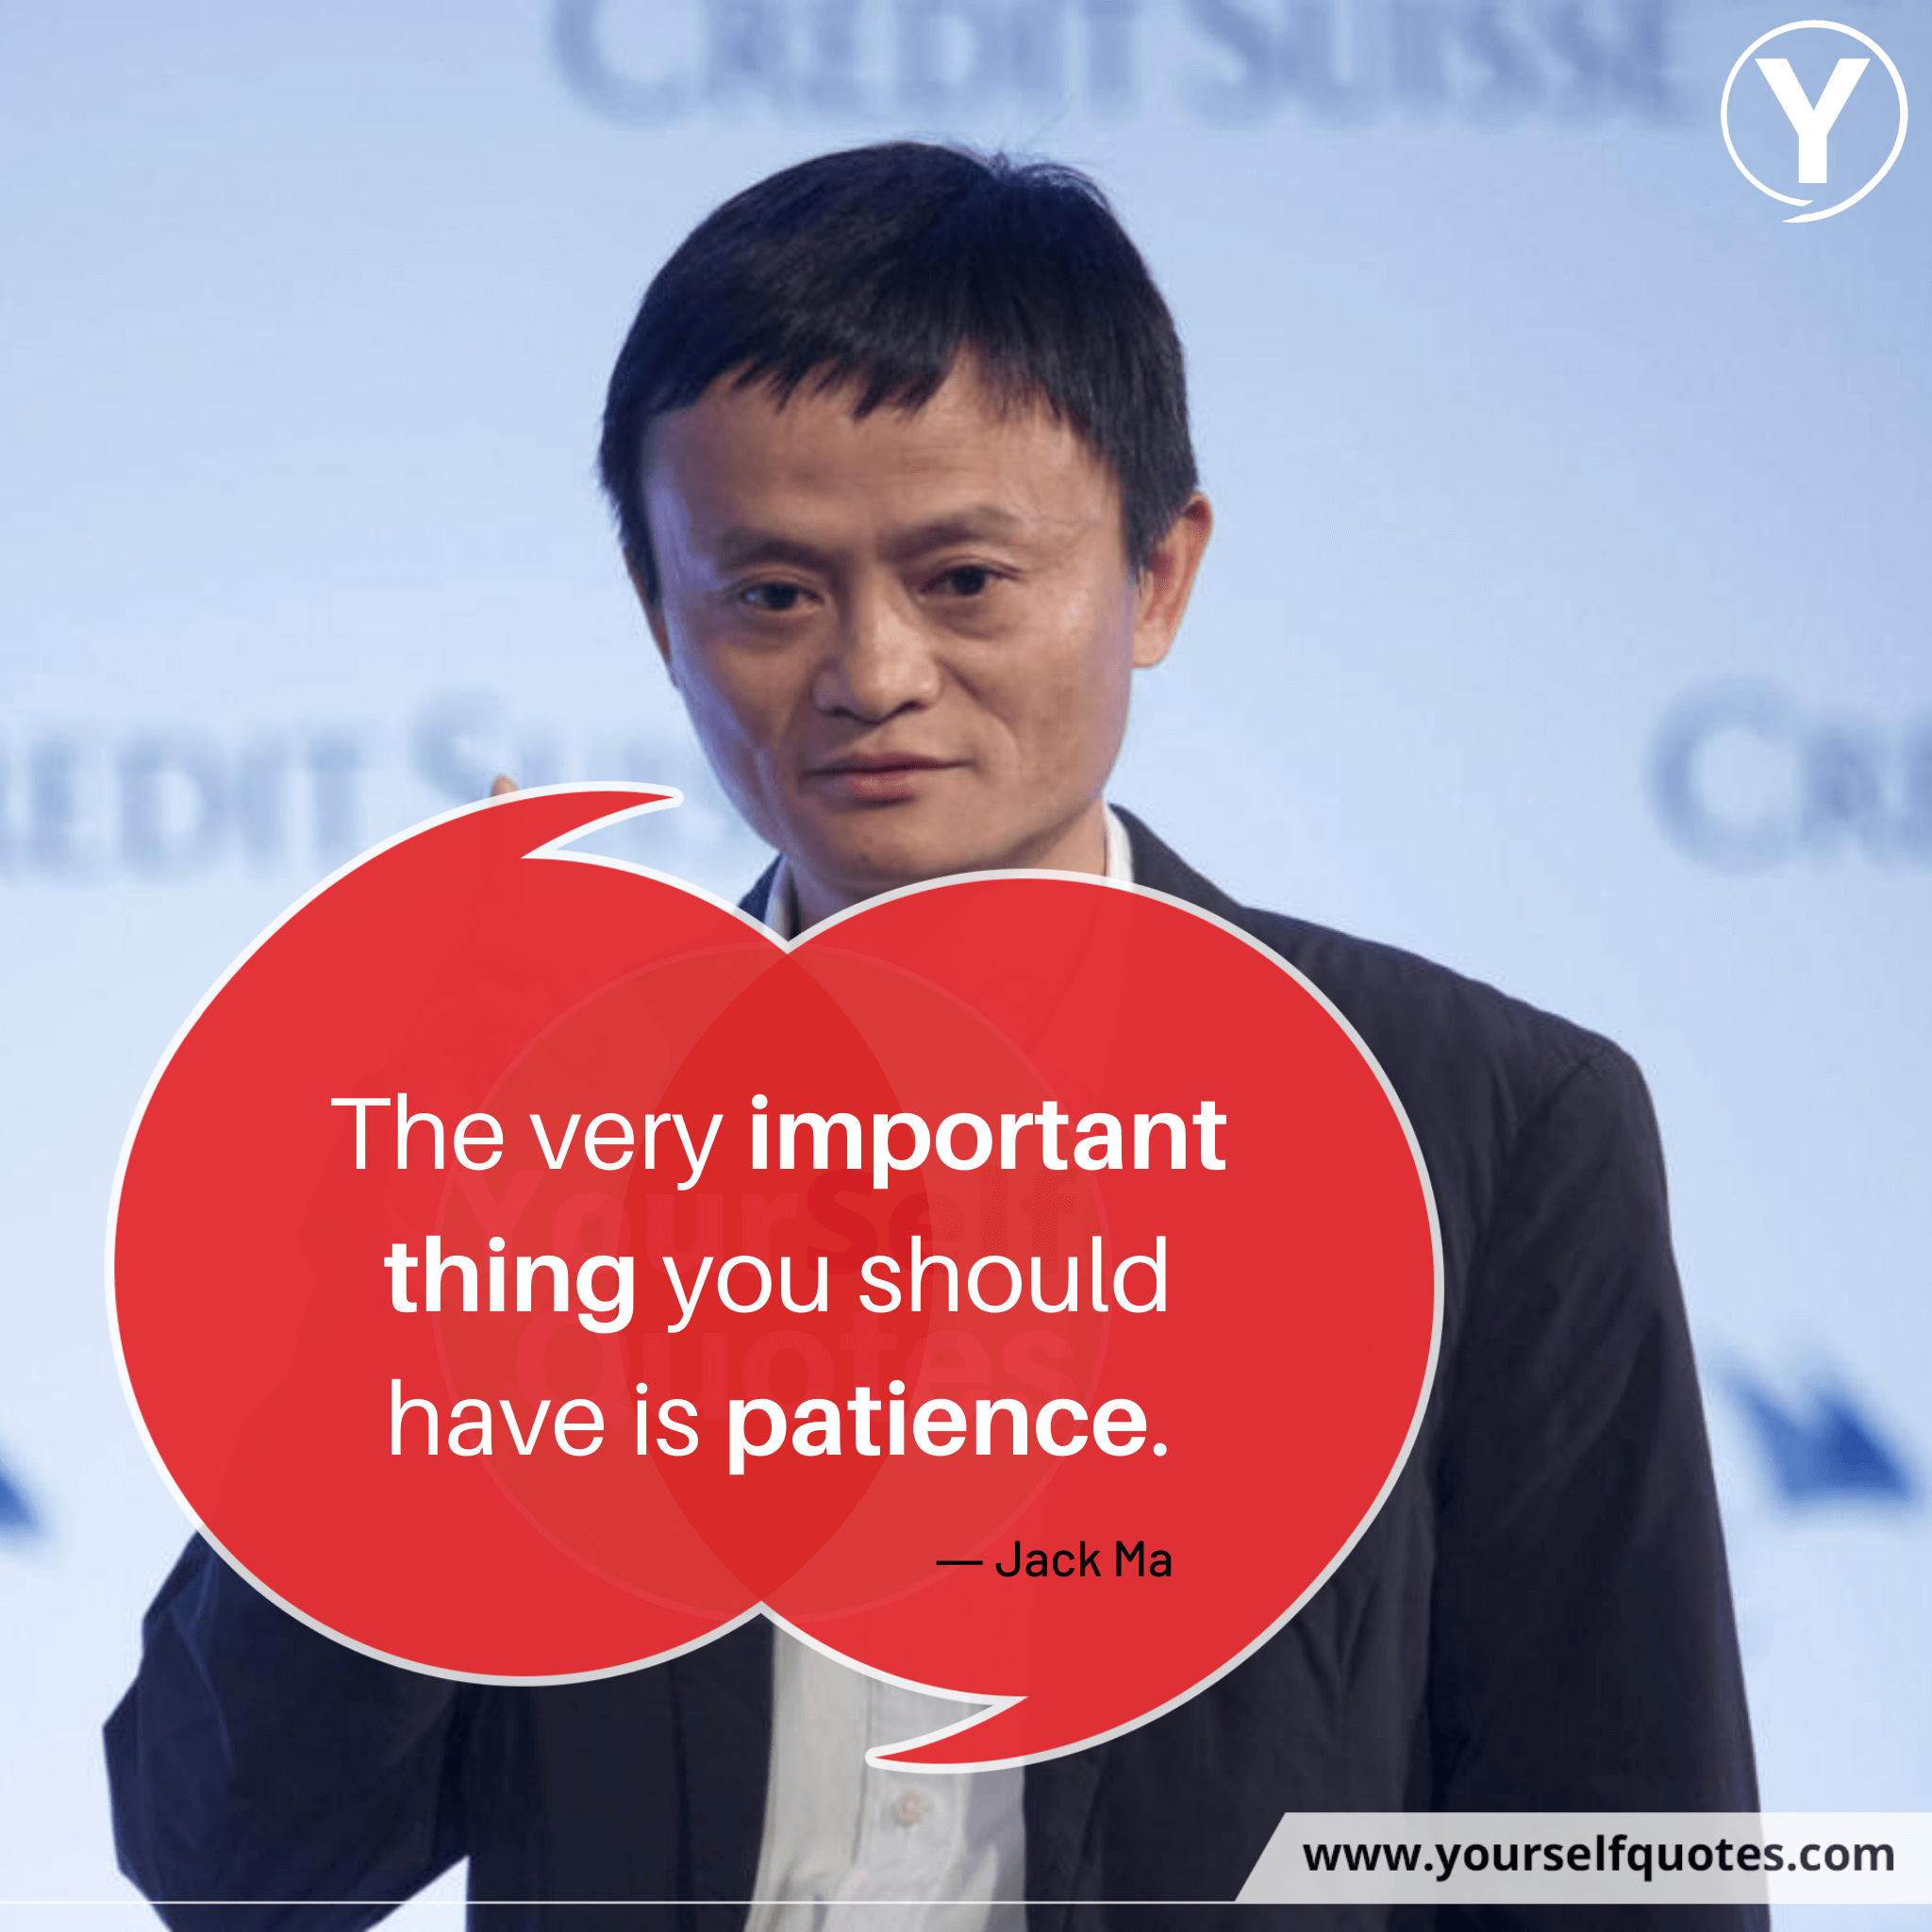 Motivational Jack Ma Quotes On Success